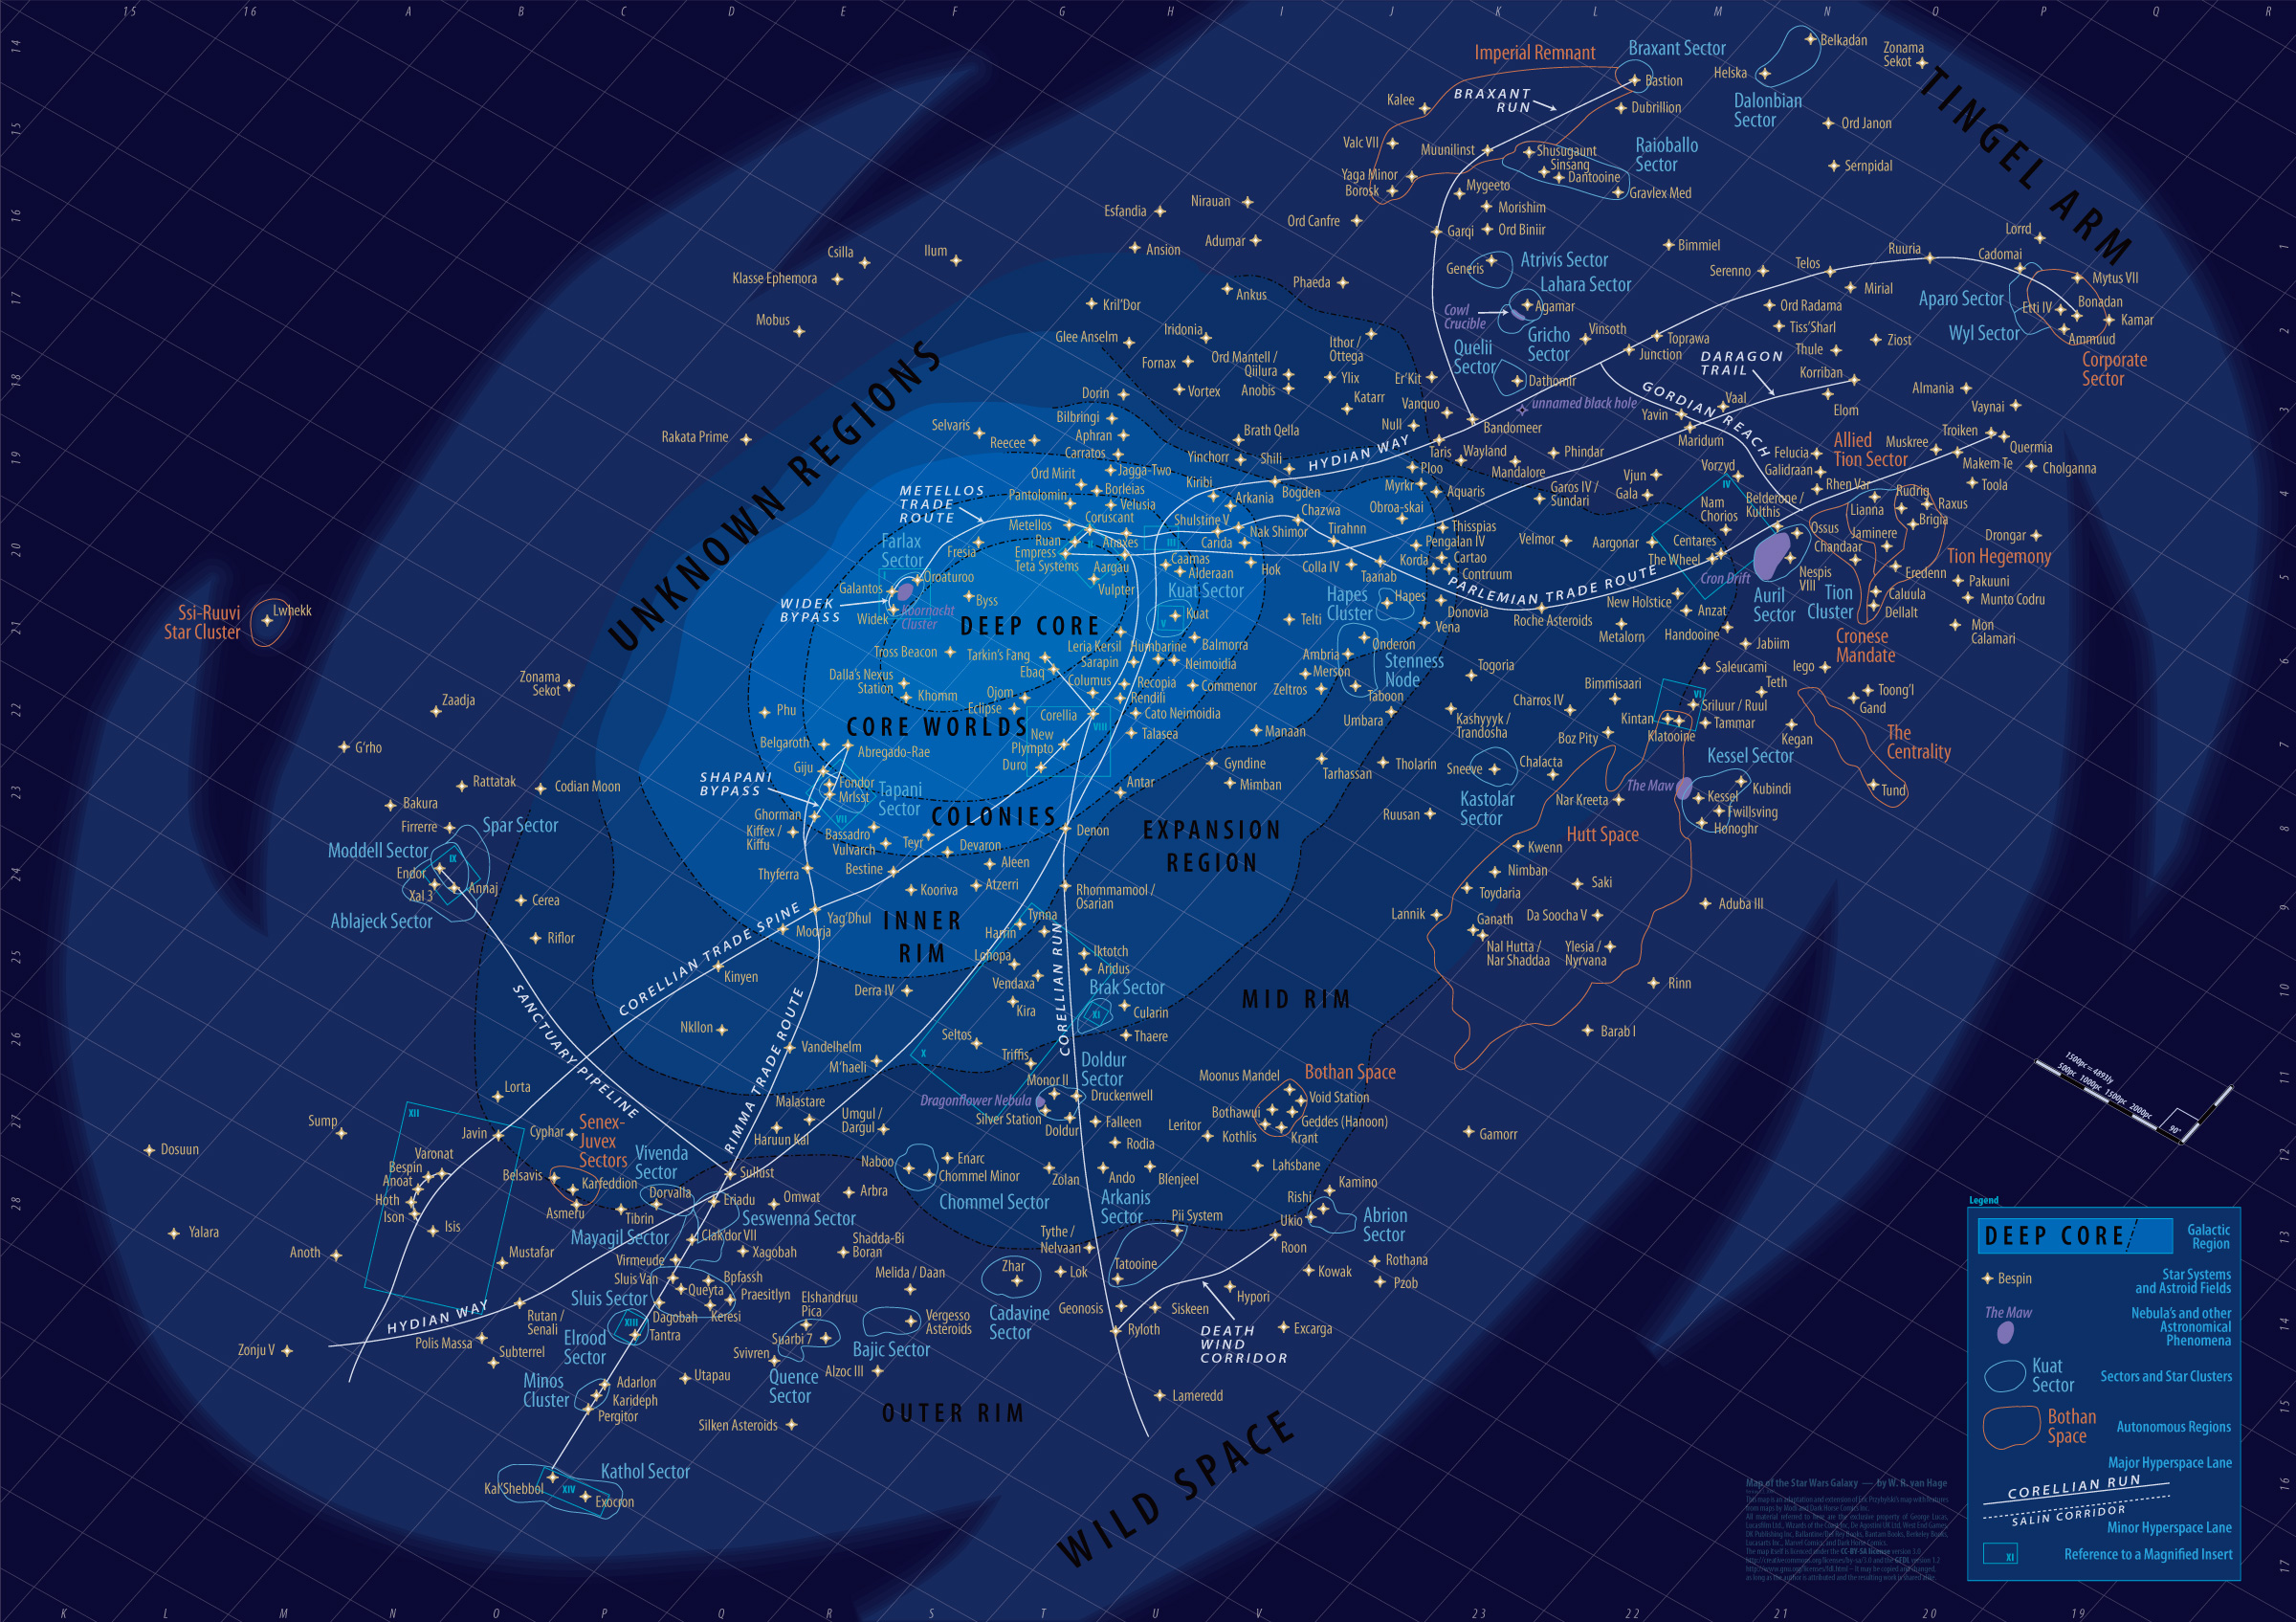 Star Wars Map Of Galaxy An Epic, Unbelievably Detailed Map Of The 'Star Wars' Galaxy  Star Wars Map Of Galaxy